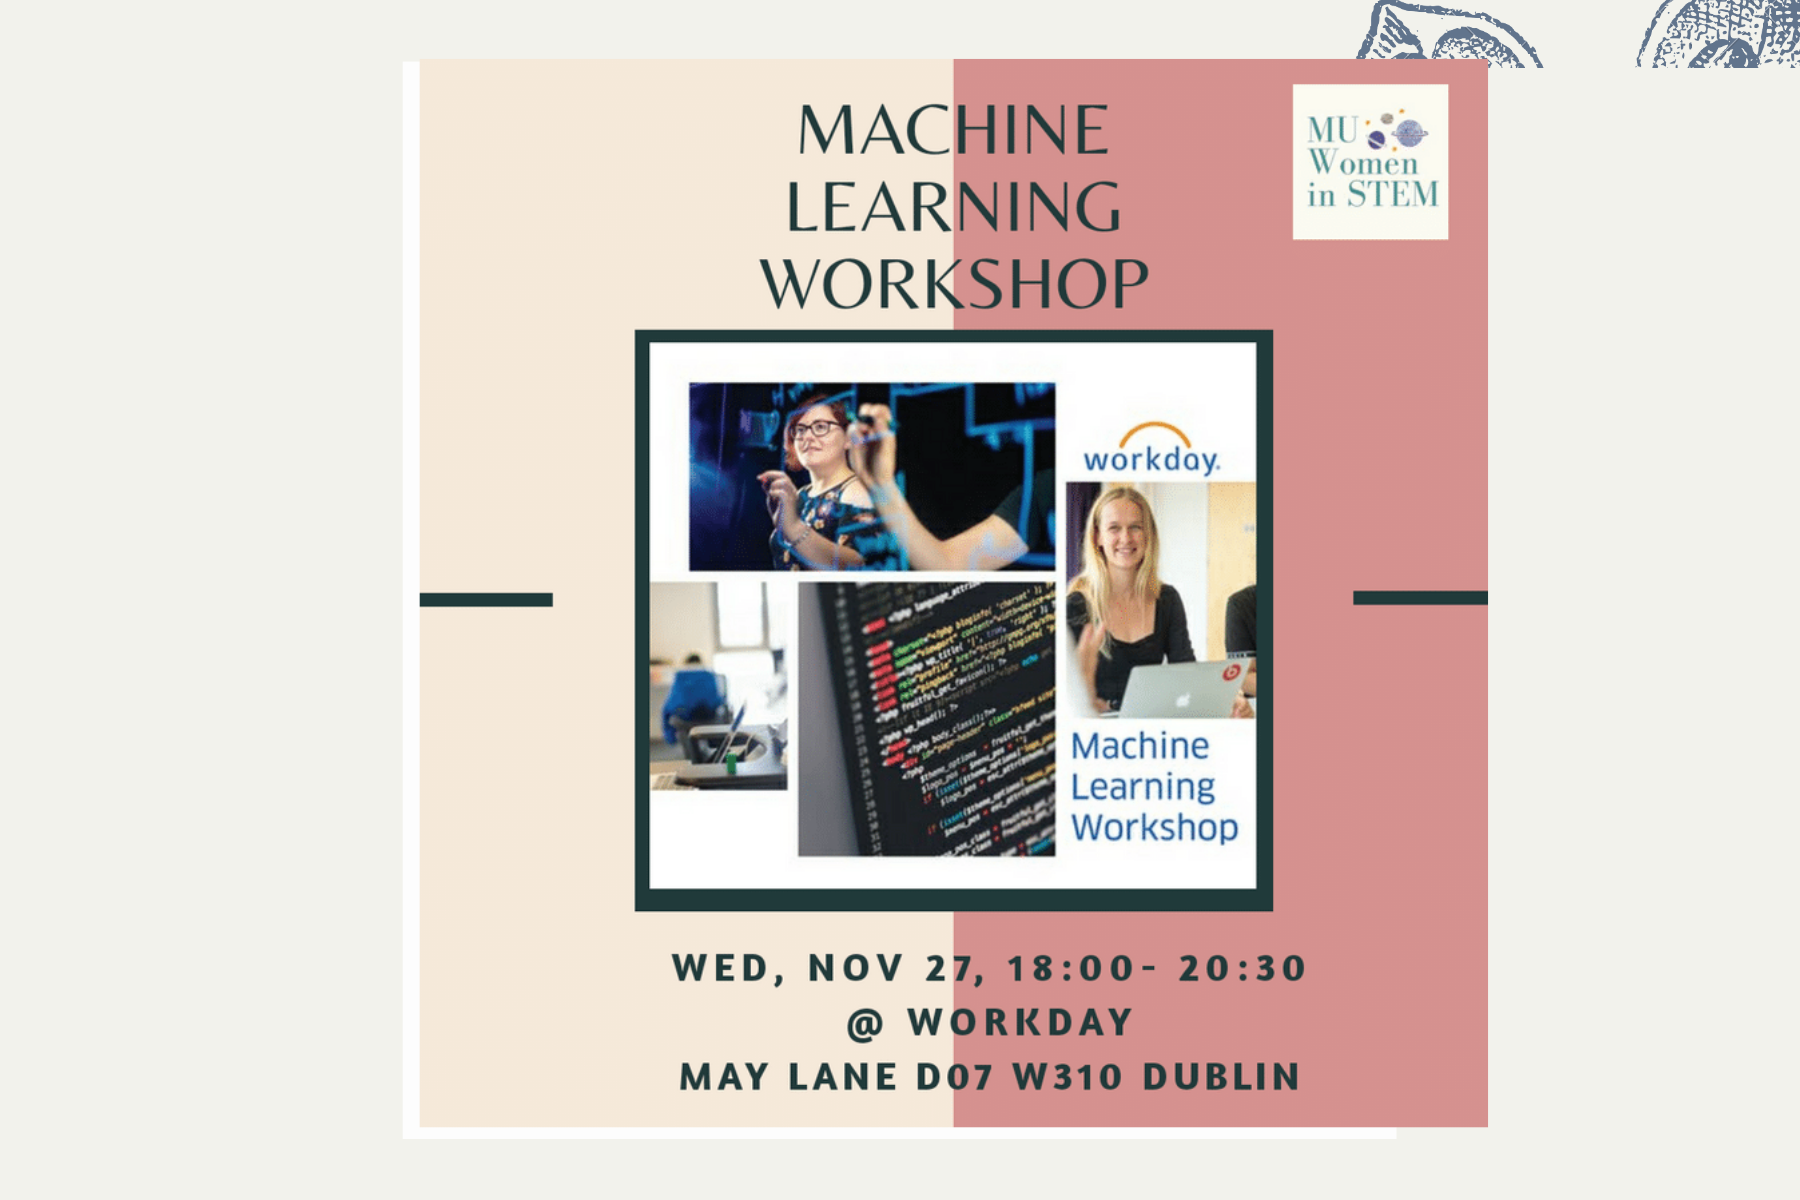 Workday Machine Learning Worshop